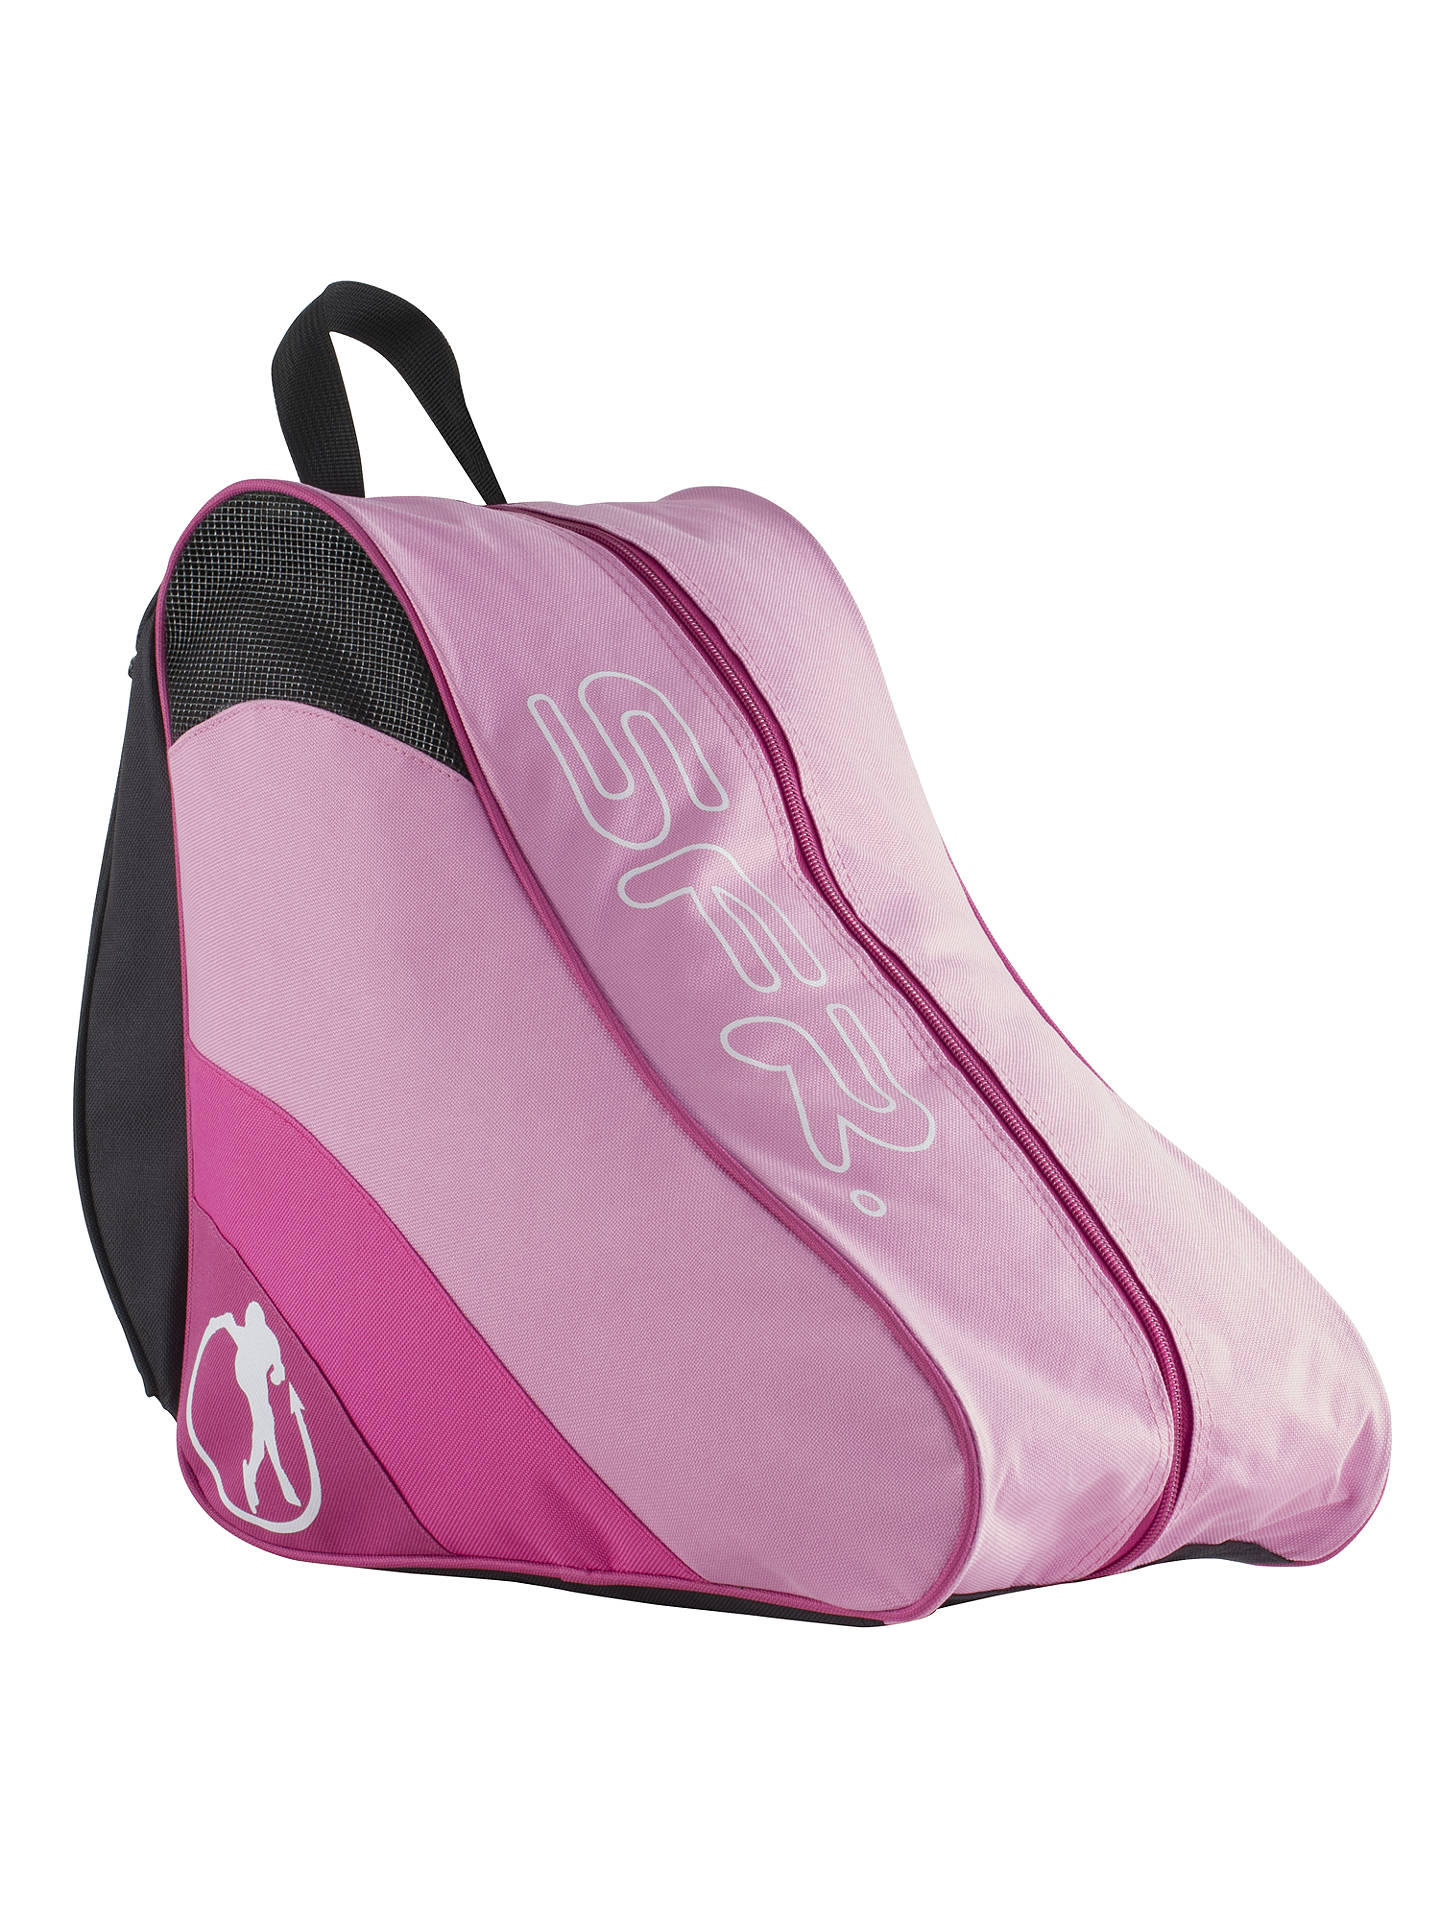 BuySFR Ice and Skate Bag, Pink Online at johnlewis.com